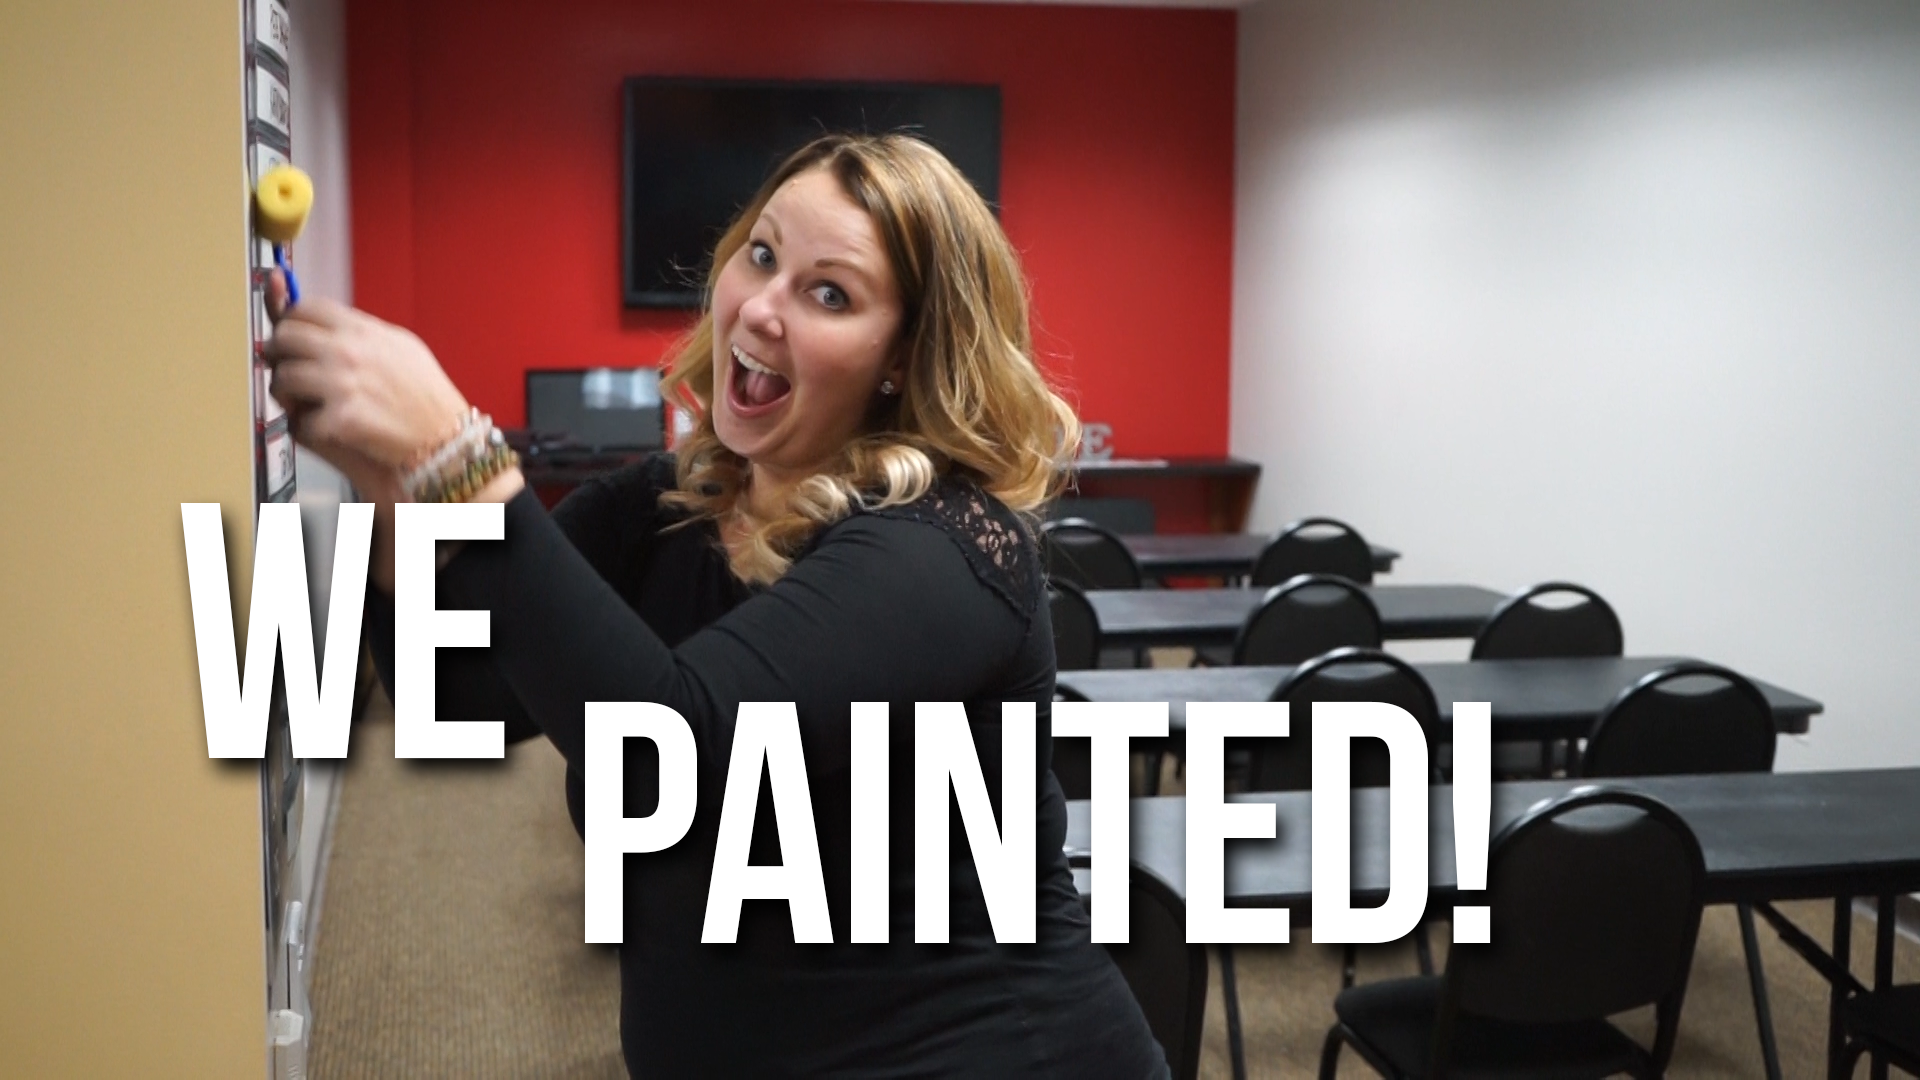 WE PAINTED!!